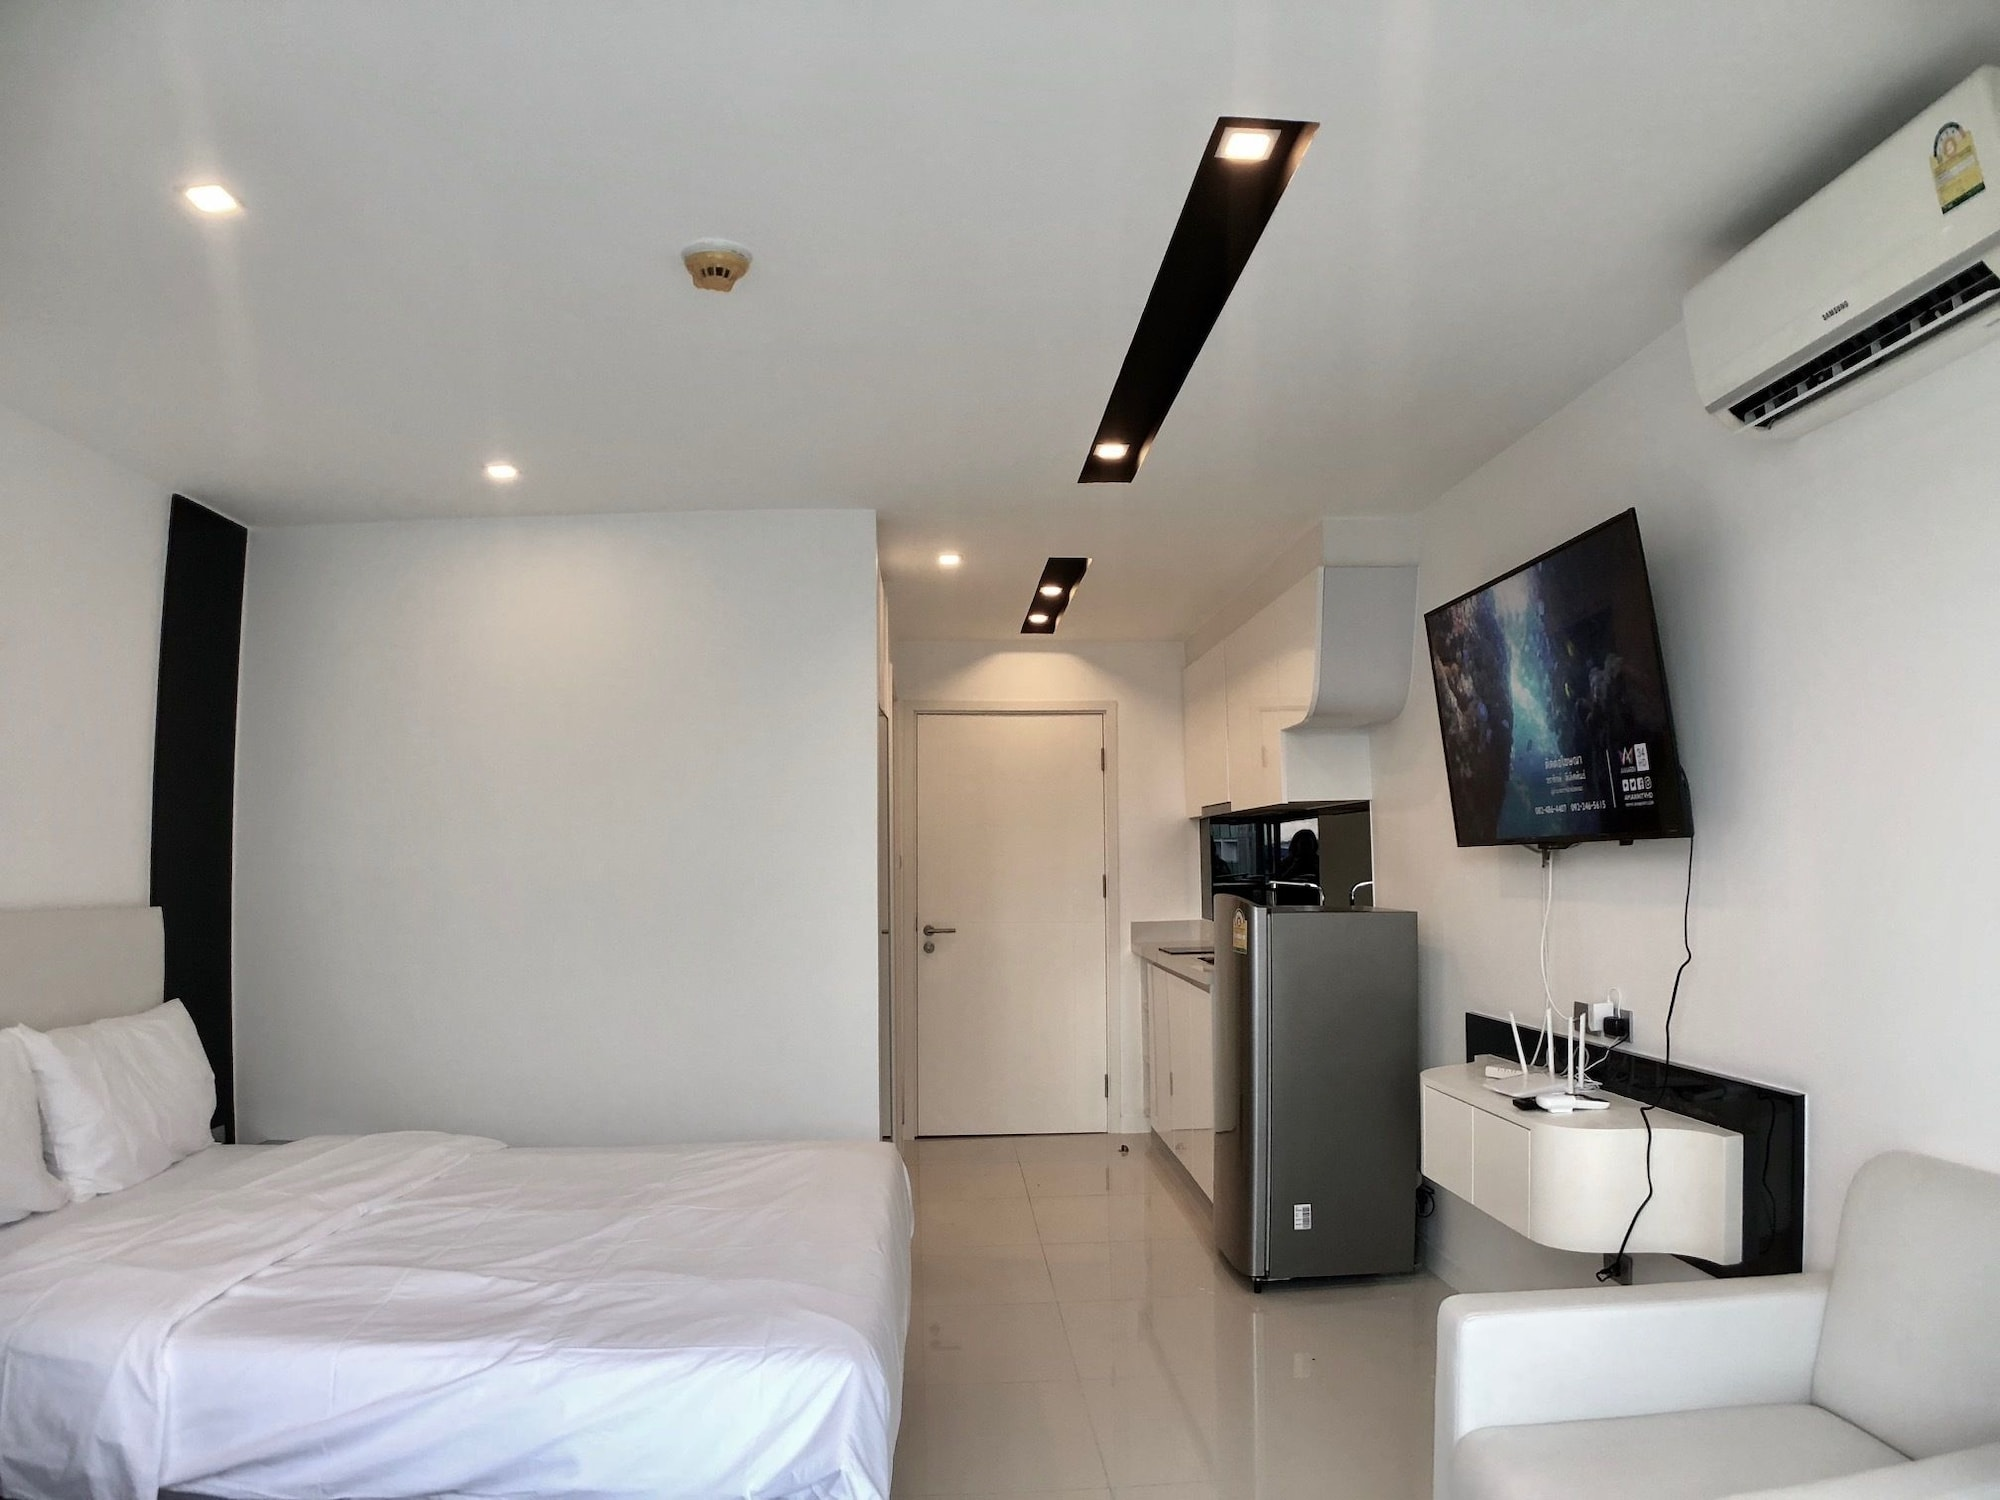 City Center Residence by Pattaya Sunny Rentals, Pattaya